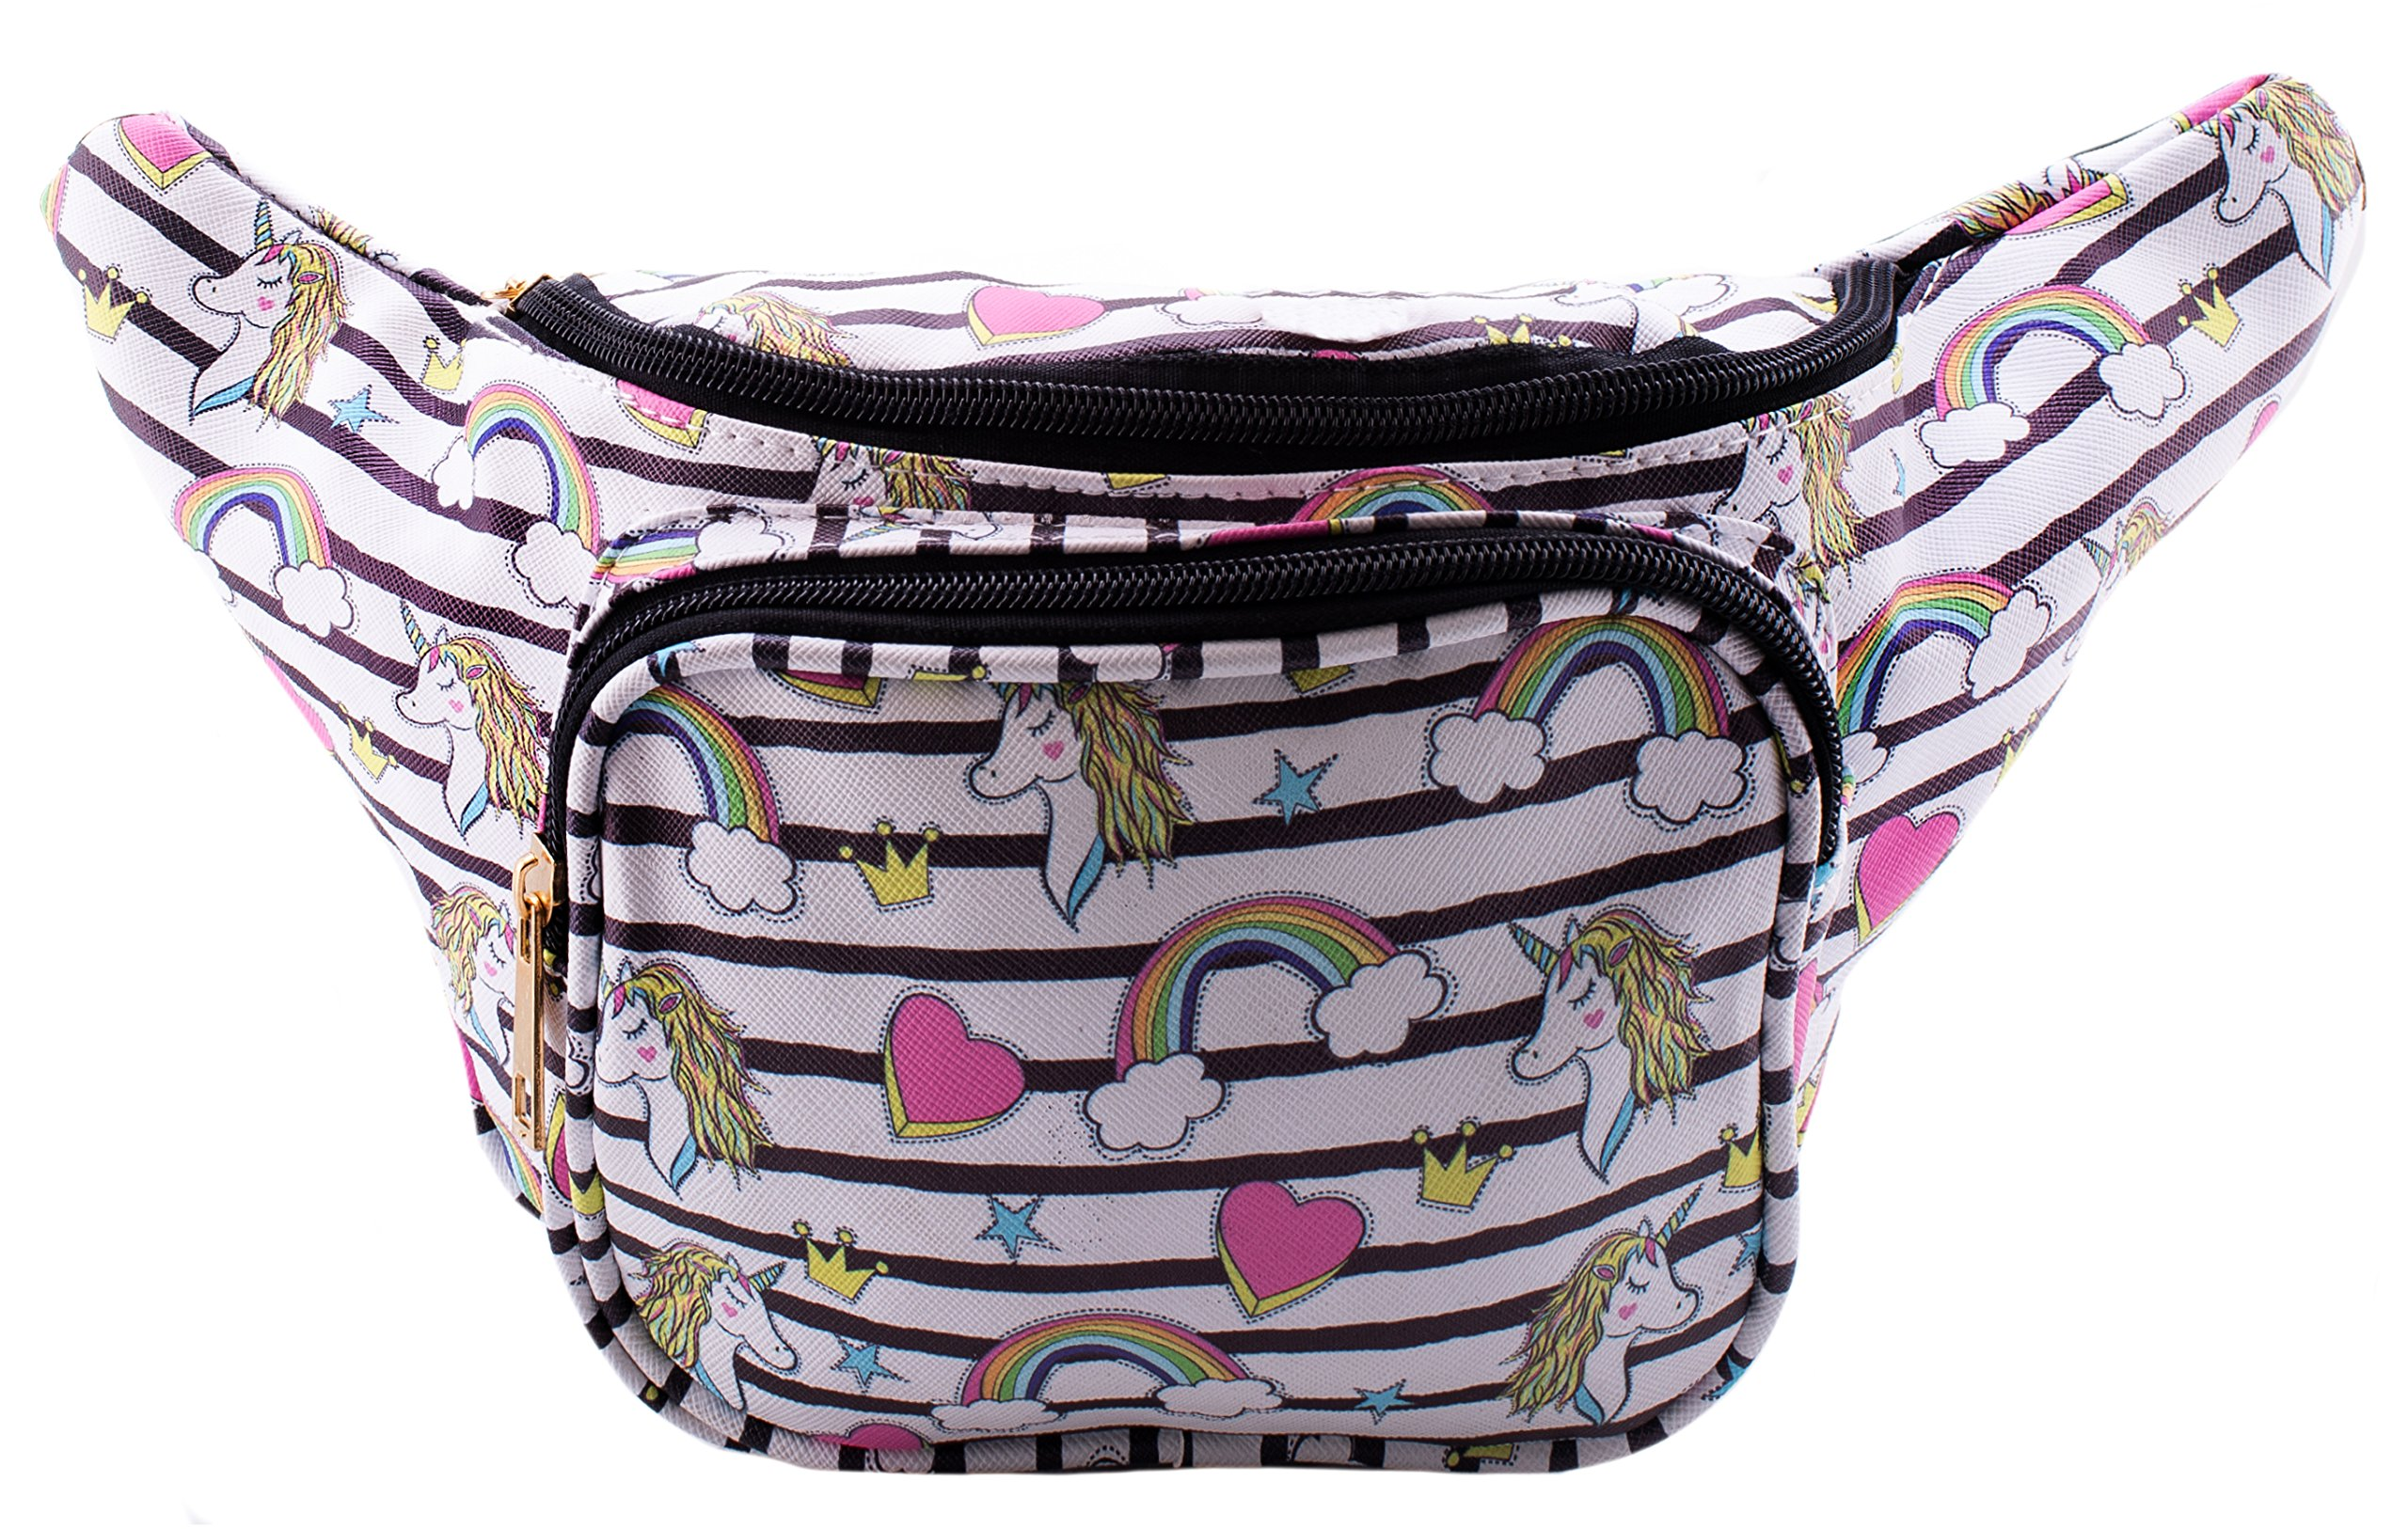 Rainbows Hearts Unicorns Fanny Pack - Waist Bags for Women - Great for Men, Women, and Kids